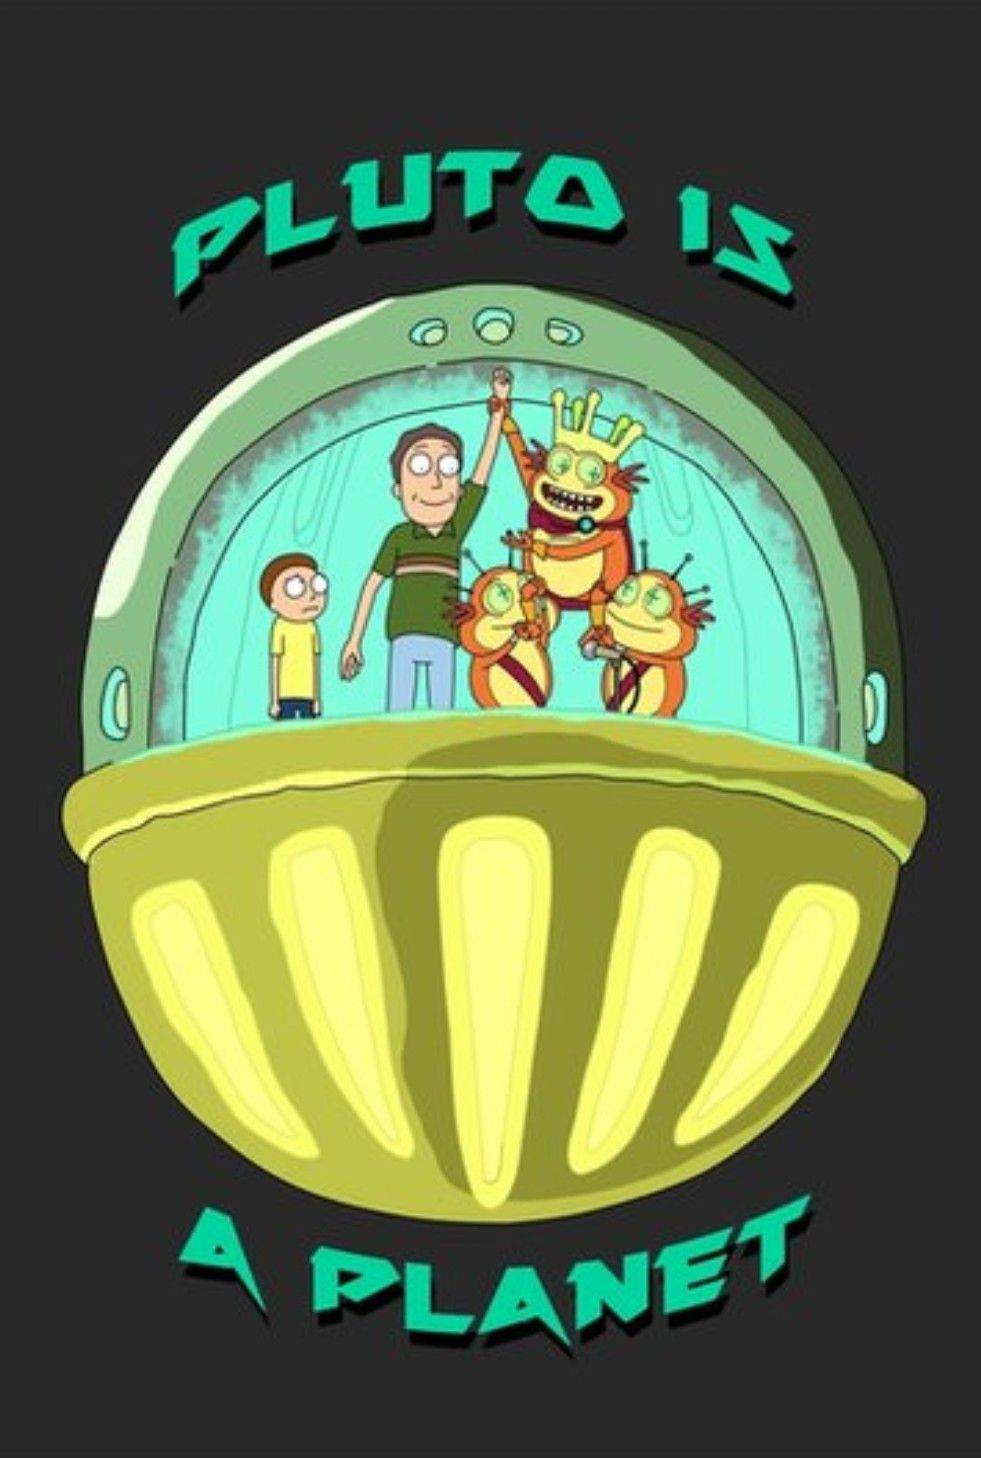 Rick and Morty x Pluto is a Planet | Rick and Morty | Rick i morty